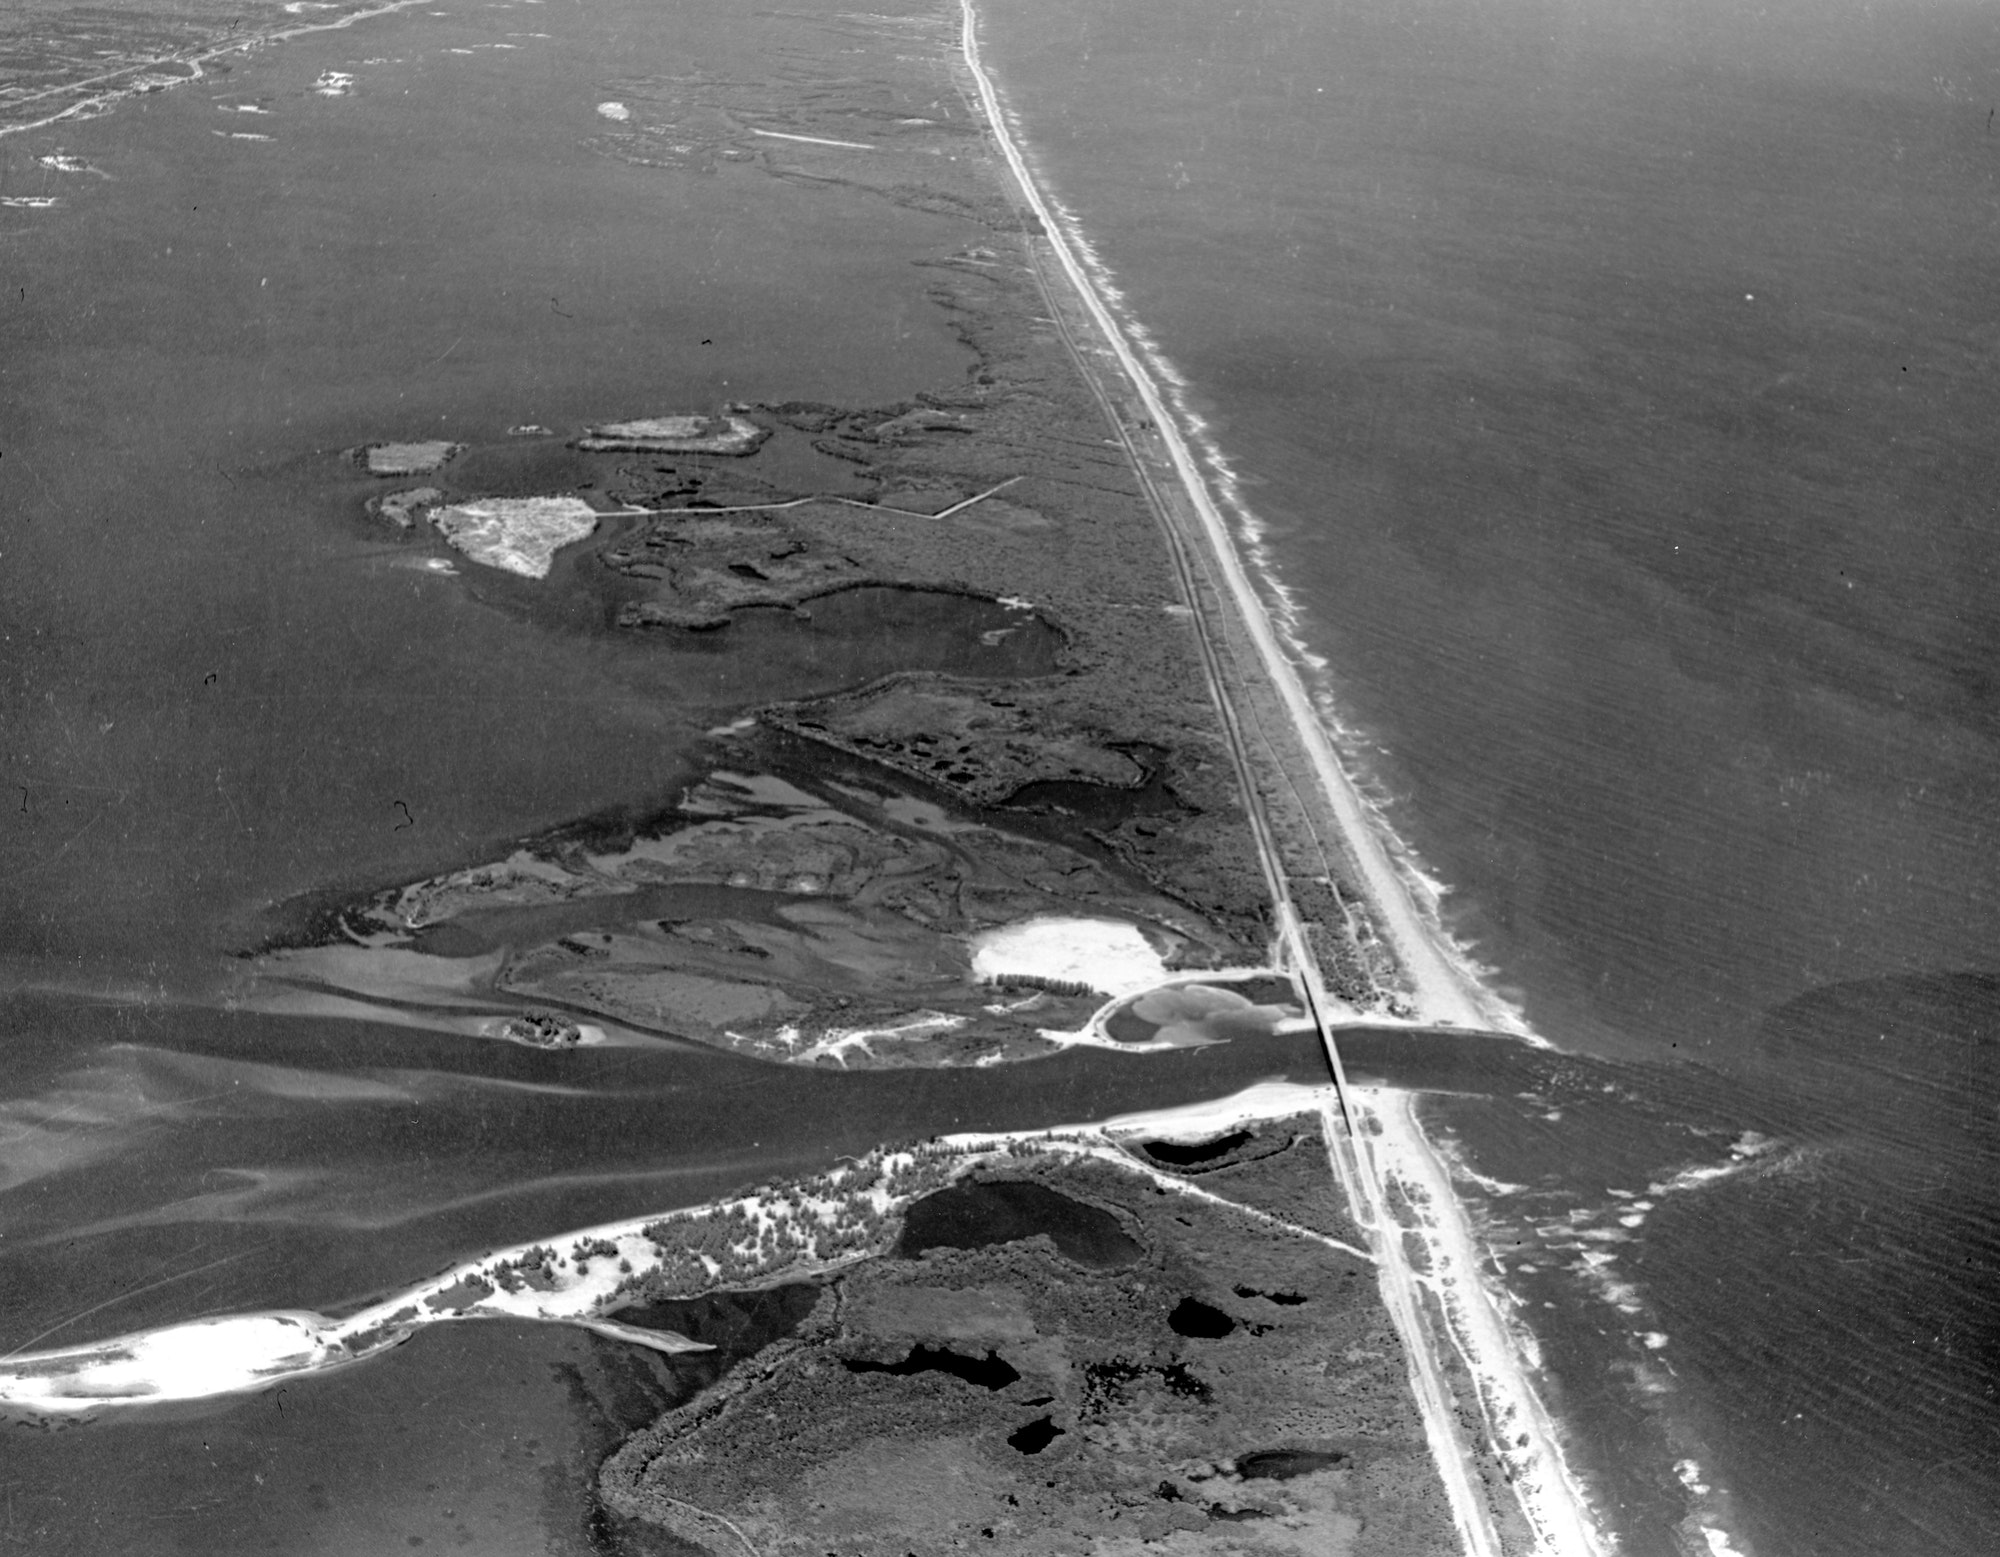 high altitude aerial view of the Sebastian Inlet from 1966 looking North over the inlet, lagoon and coastline